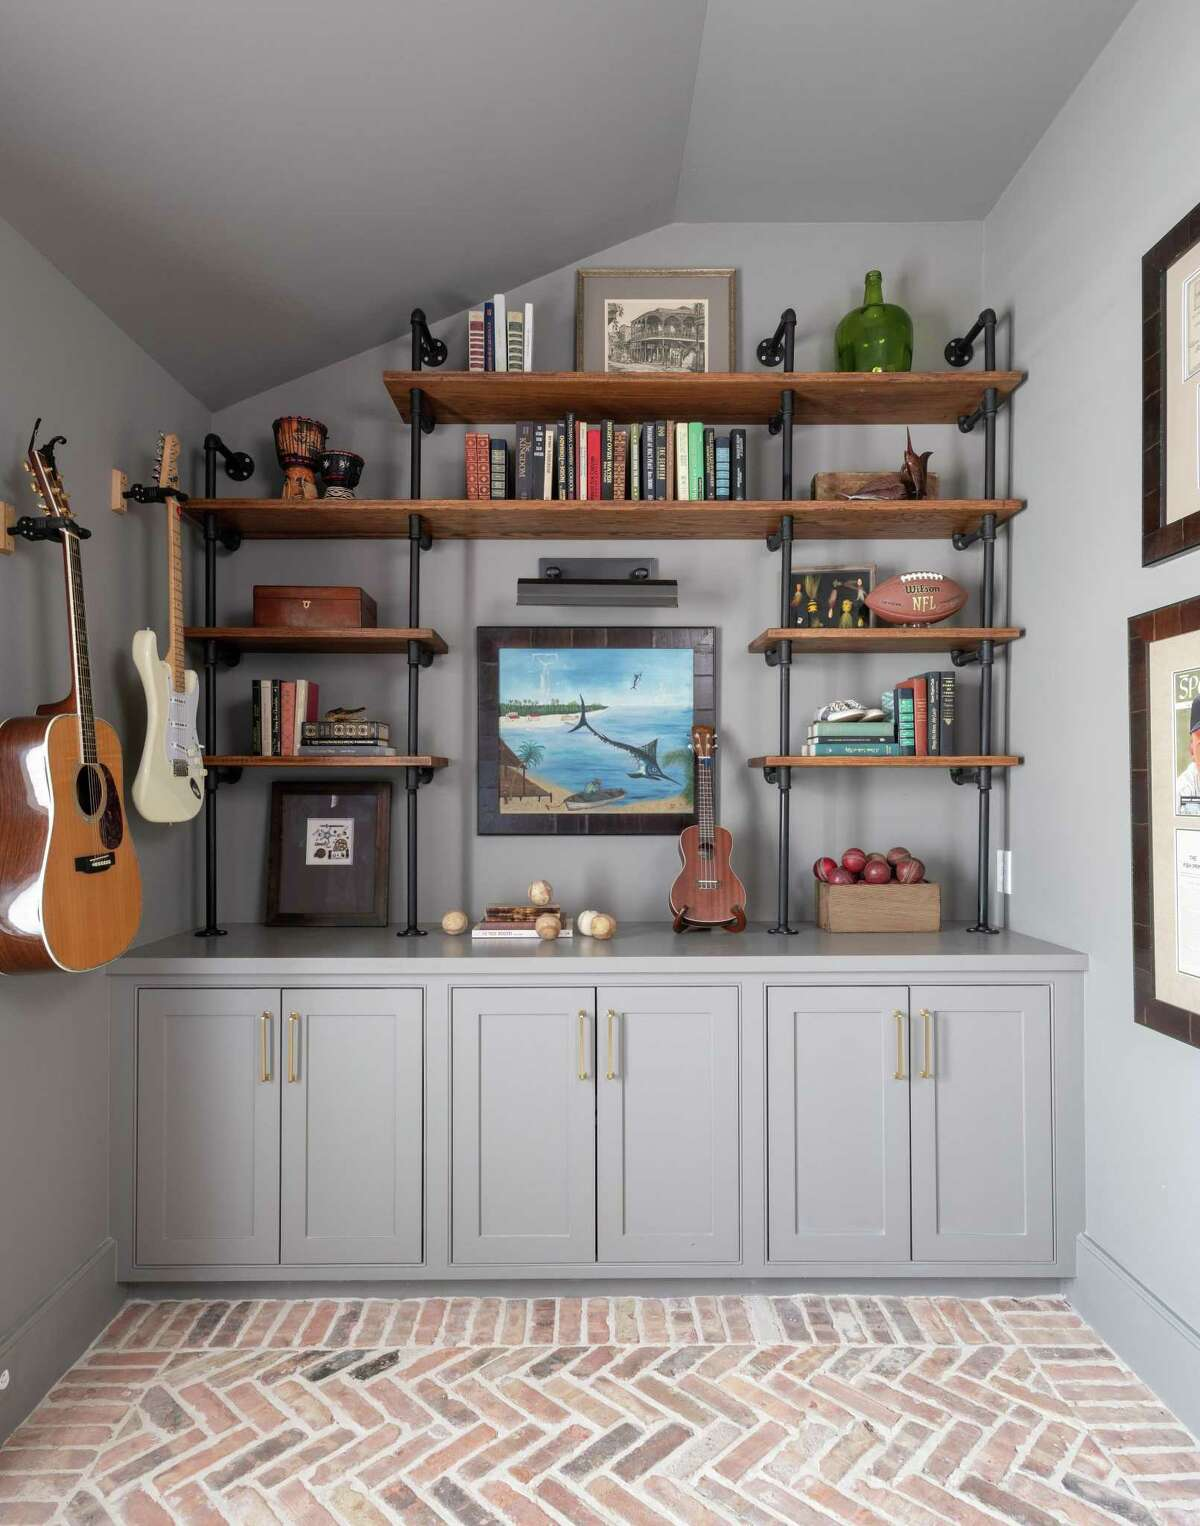 Kiley Jackson and Aileen Warren of Jackson Warren Interiors mixed books with other mementoes to show their client's hobbies and personality.